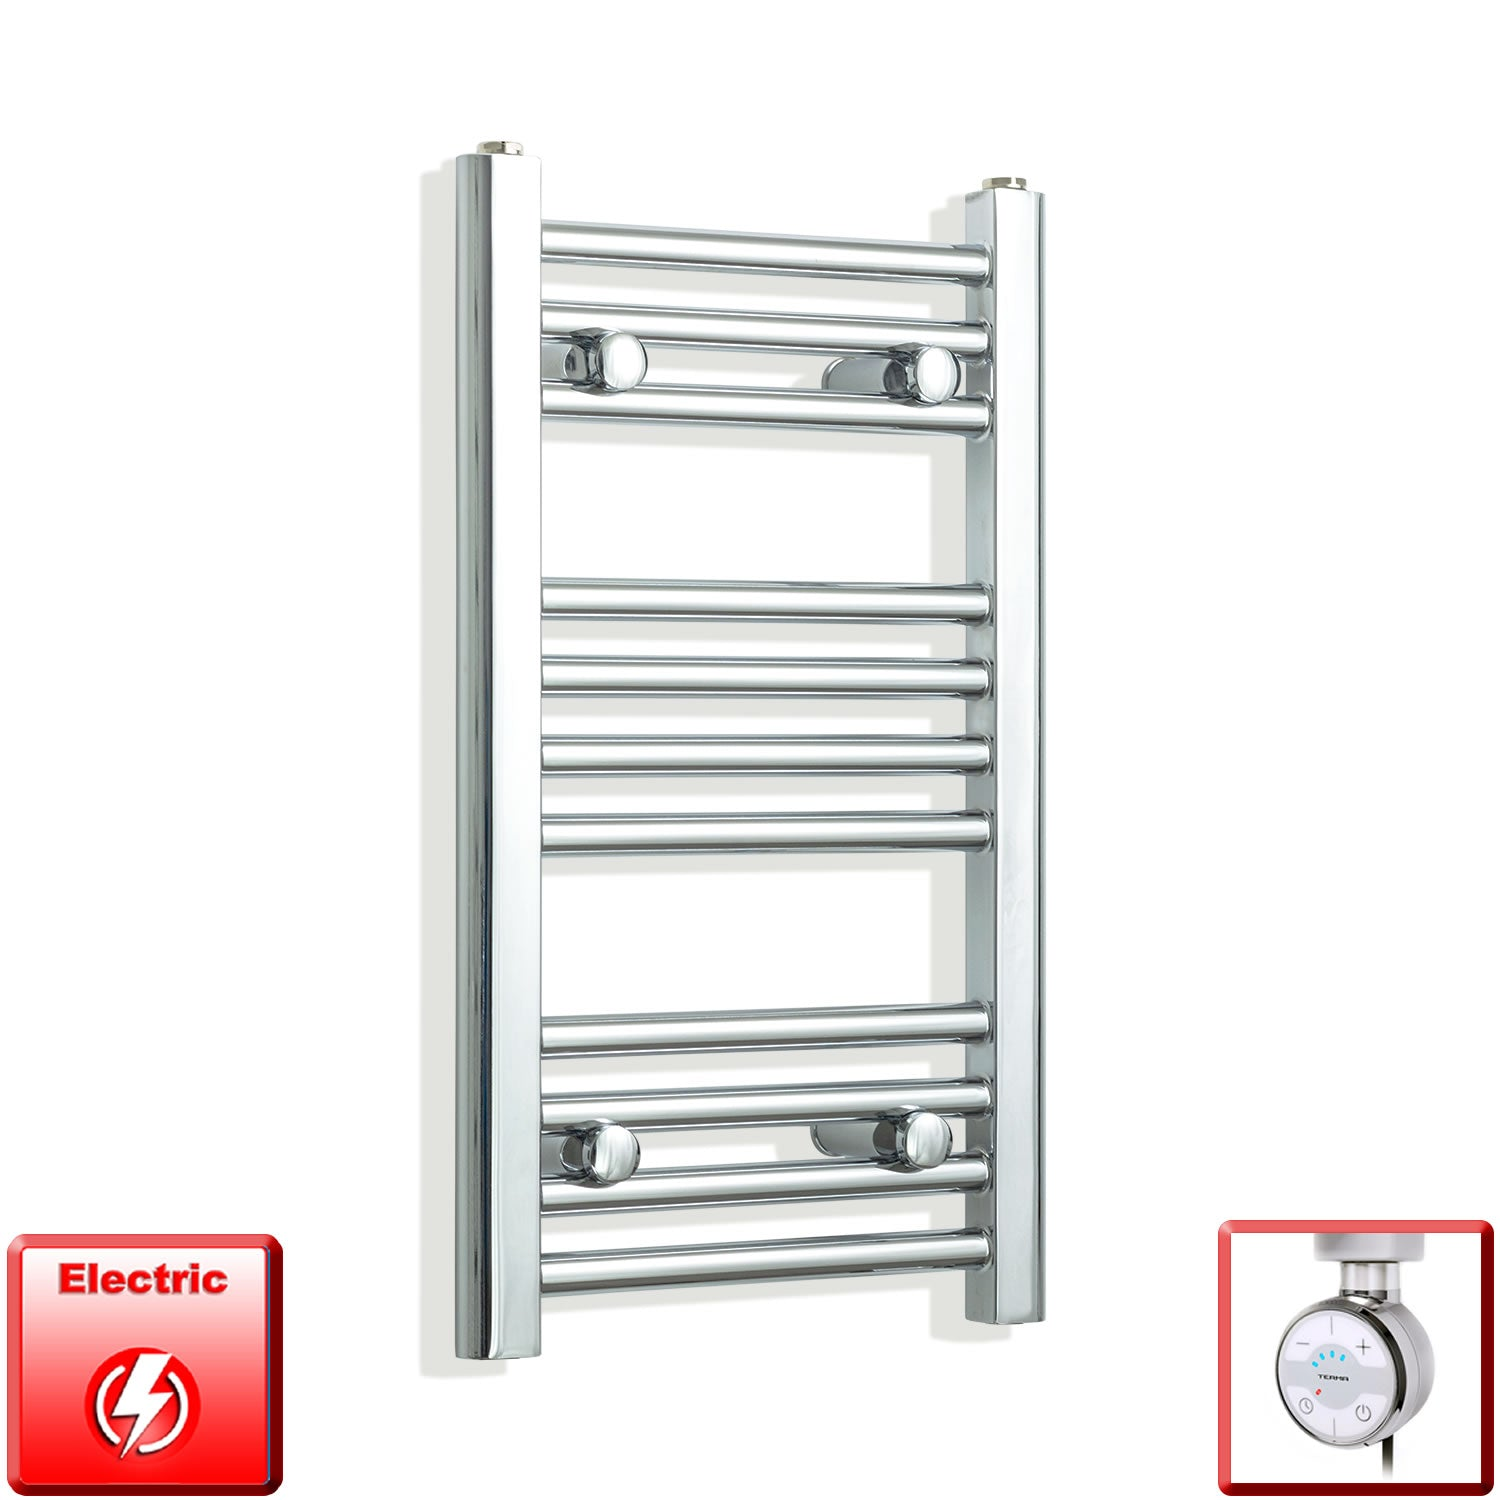 350mm Wide 600mm High Pre-Filled Chrome Electric Towel Rail Radiator With Thermostatic MOA Element